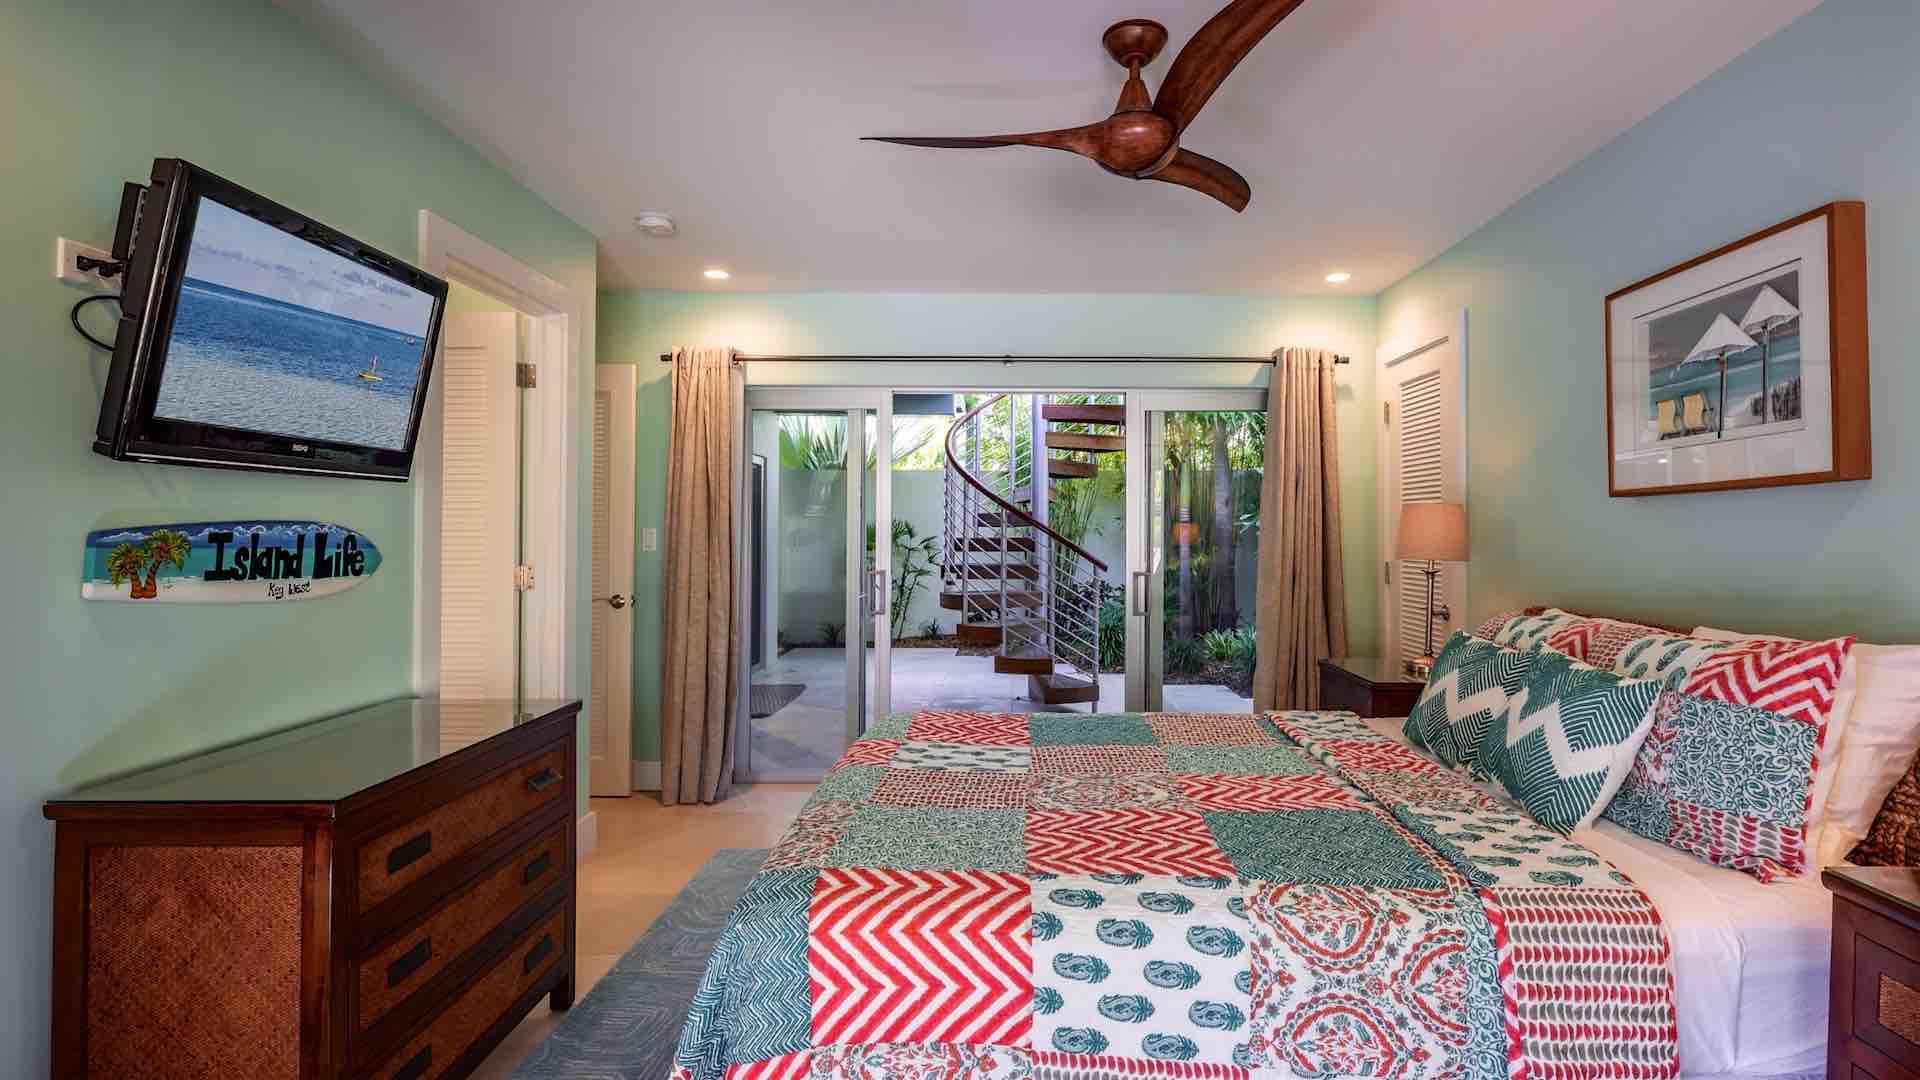 The third bedroom not only has direct access to the pool area, but also to the adjacent gardens...